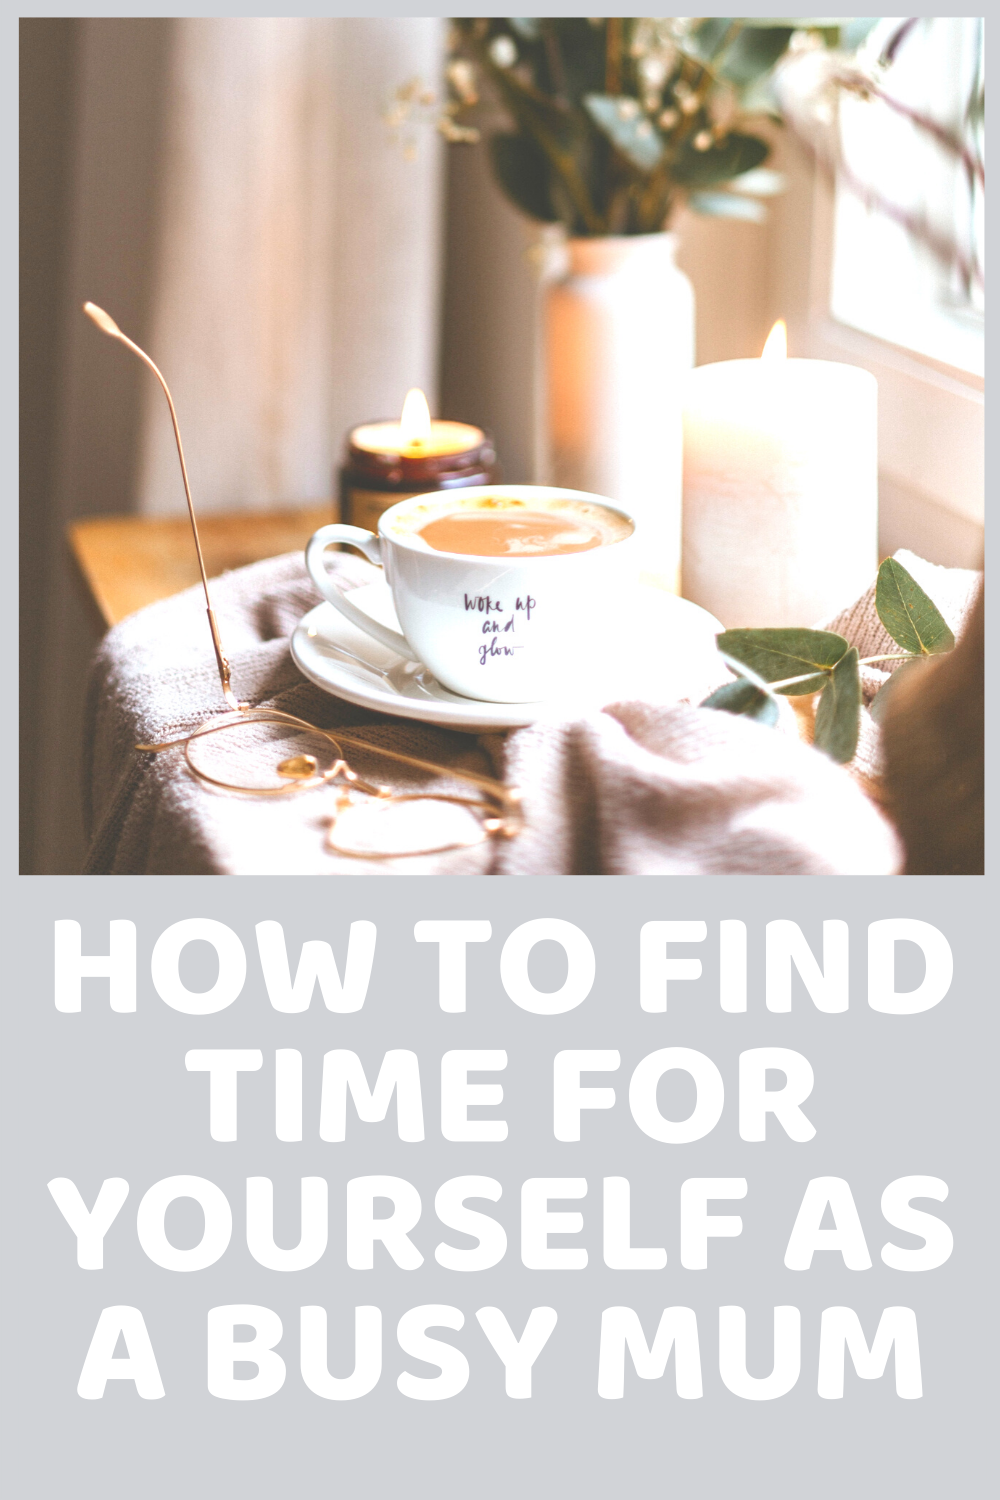 How To Find Time For Yourself As A Busy Mum